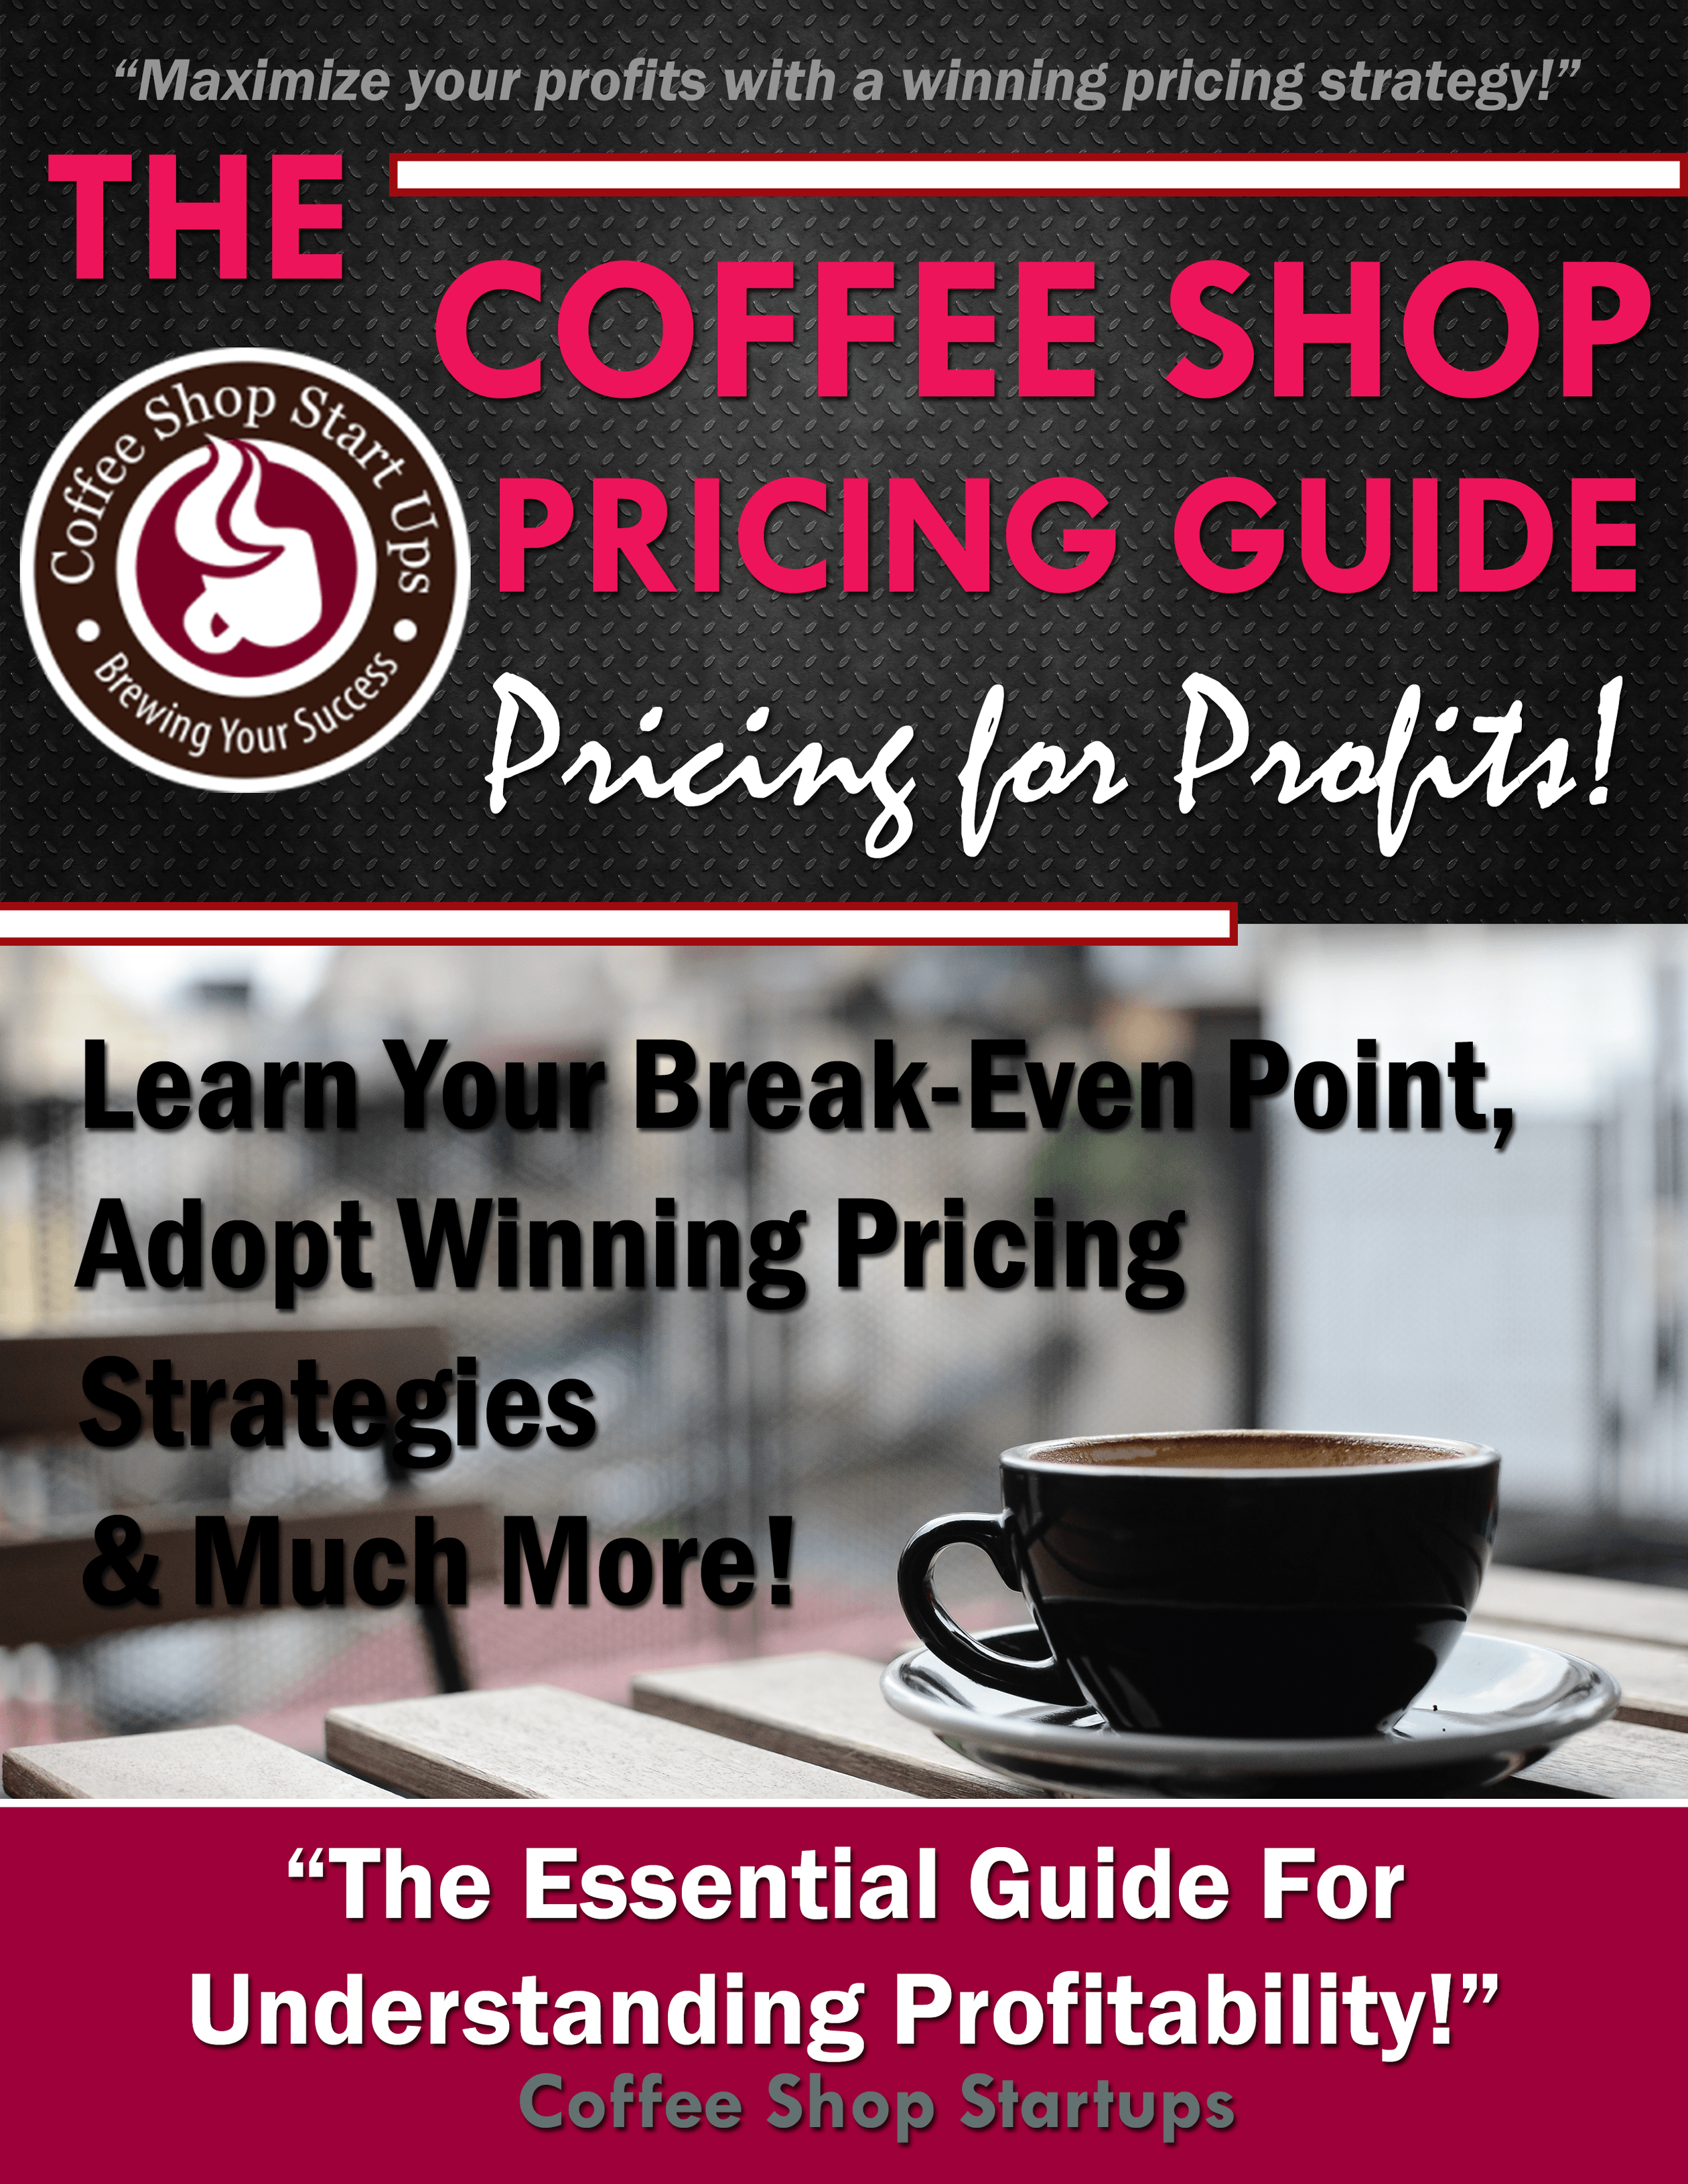 How To Start A Coffee Shop Pricing Guide For A Coffee Shop How To Price Items For A Coffee Sho Coffee Shop Business Coffee Shop Business Plan Coffee Business